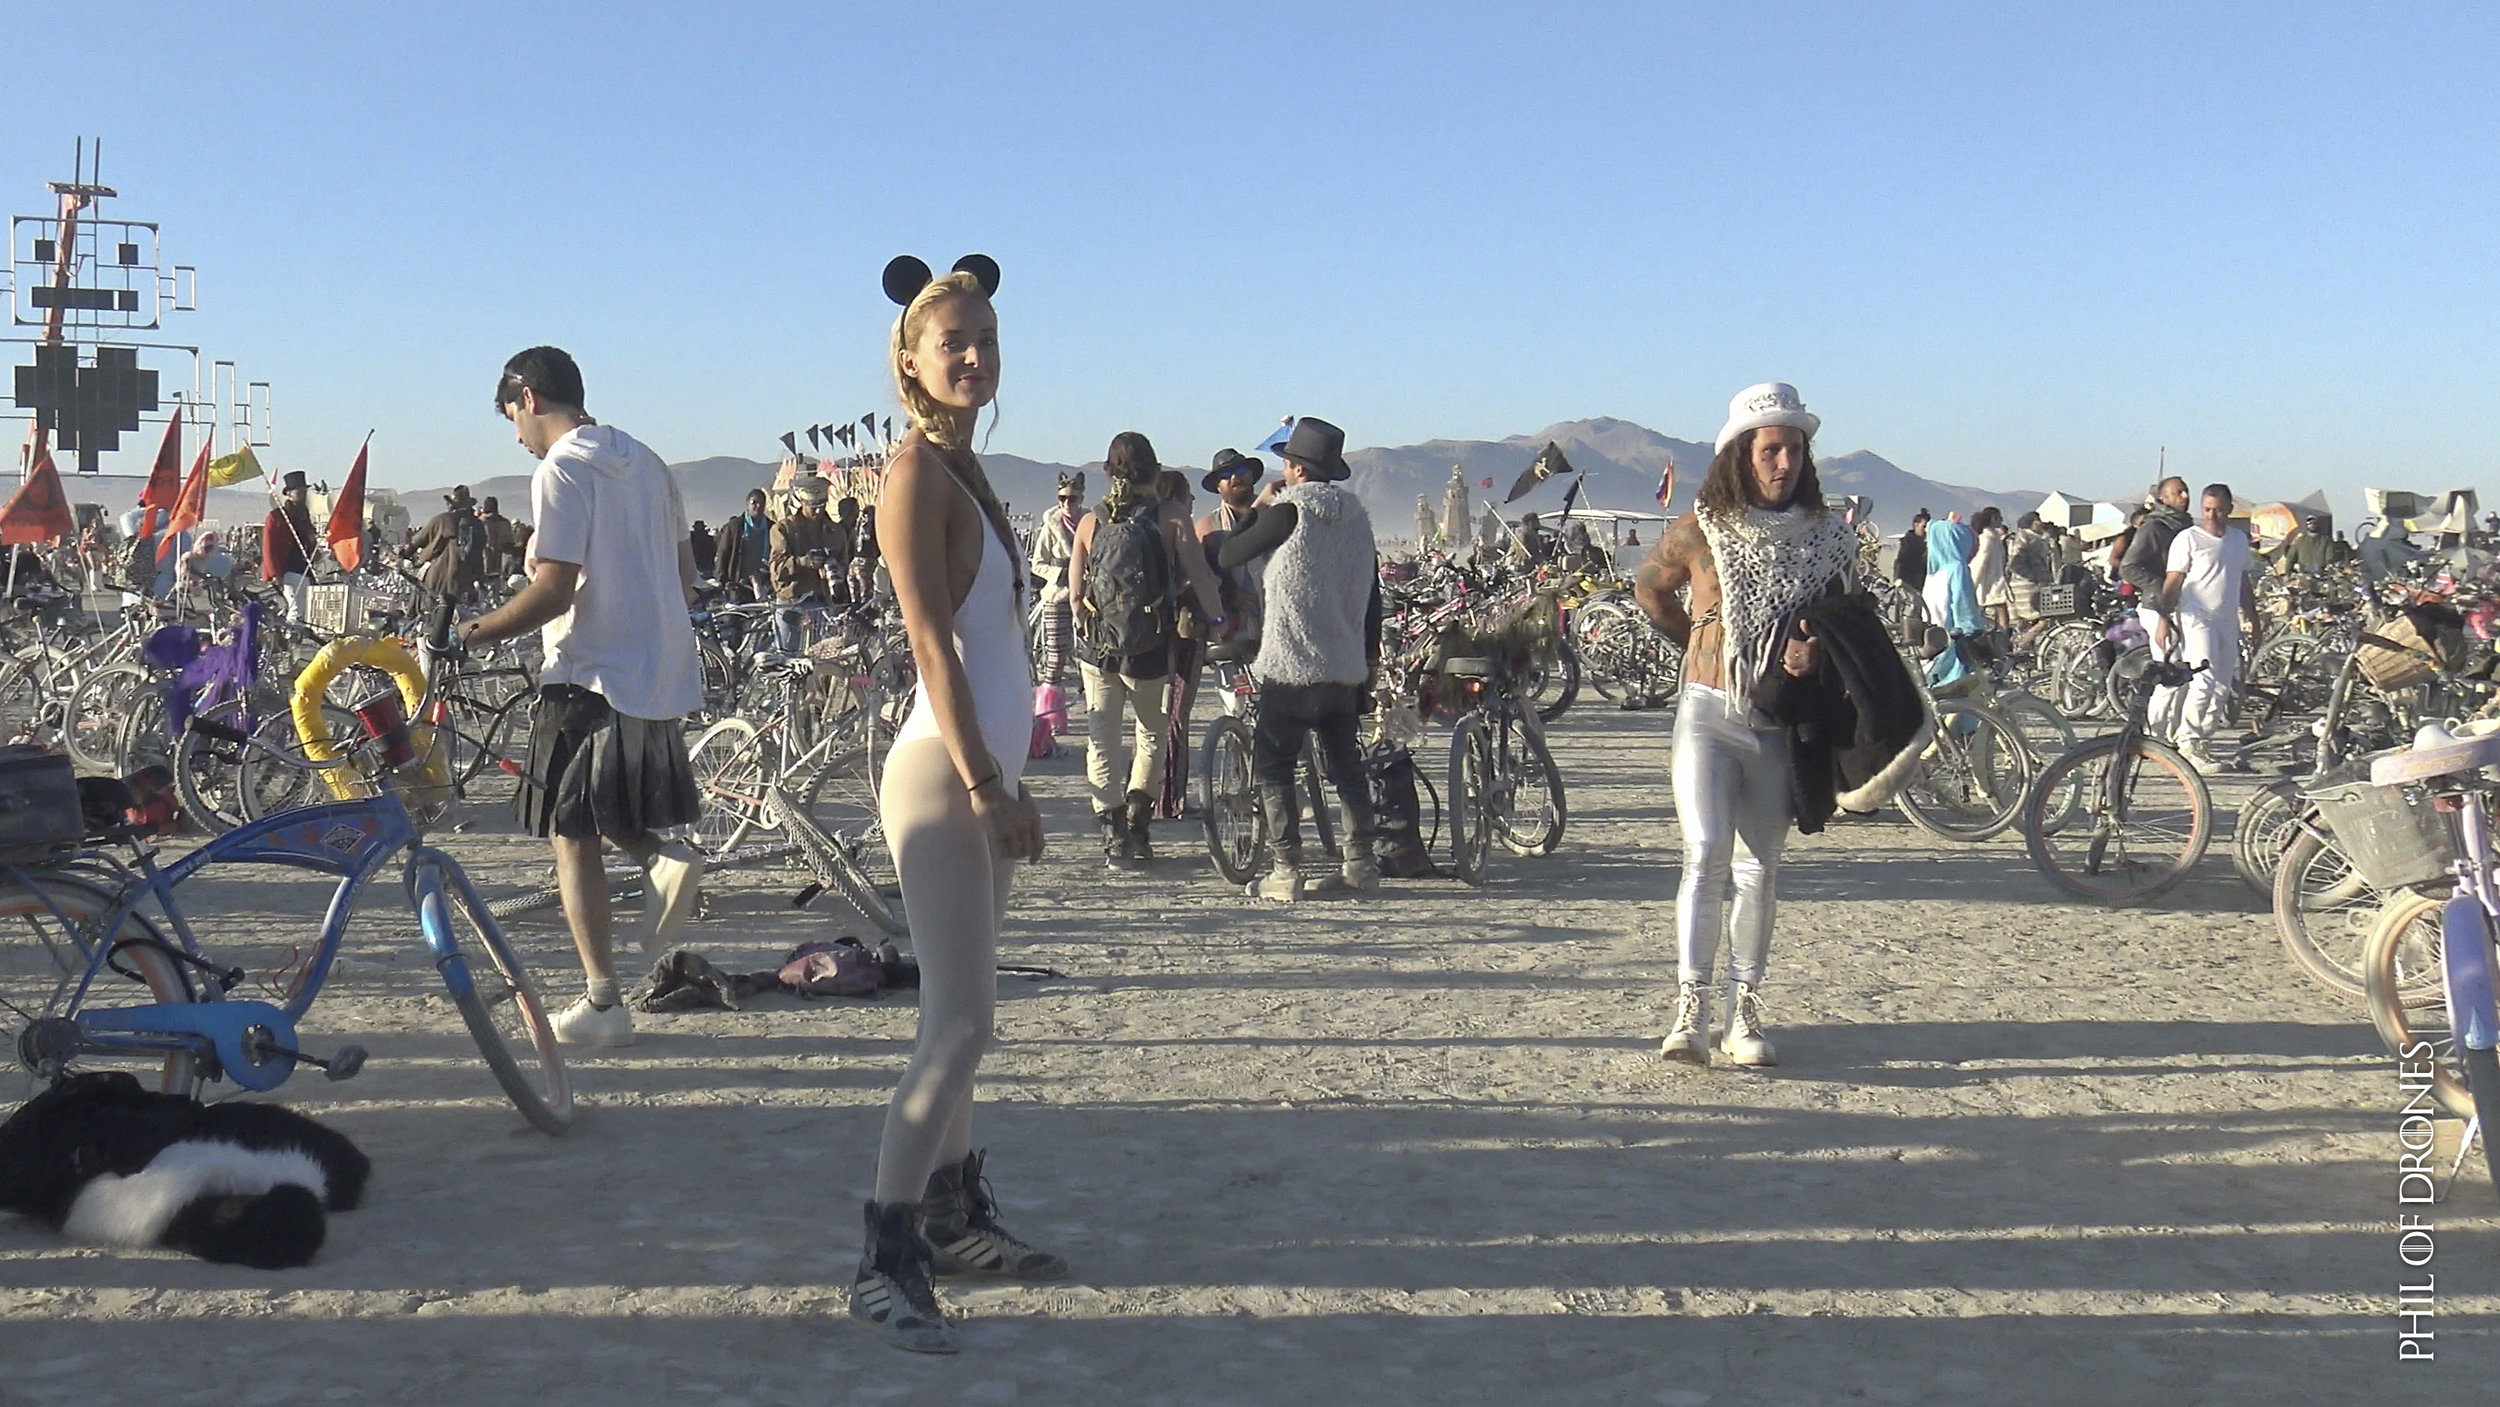 Burning Man 2016-8-PhM-6.jpg